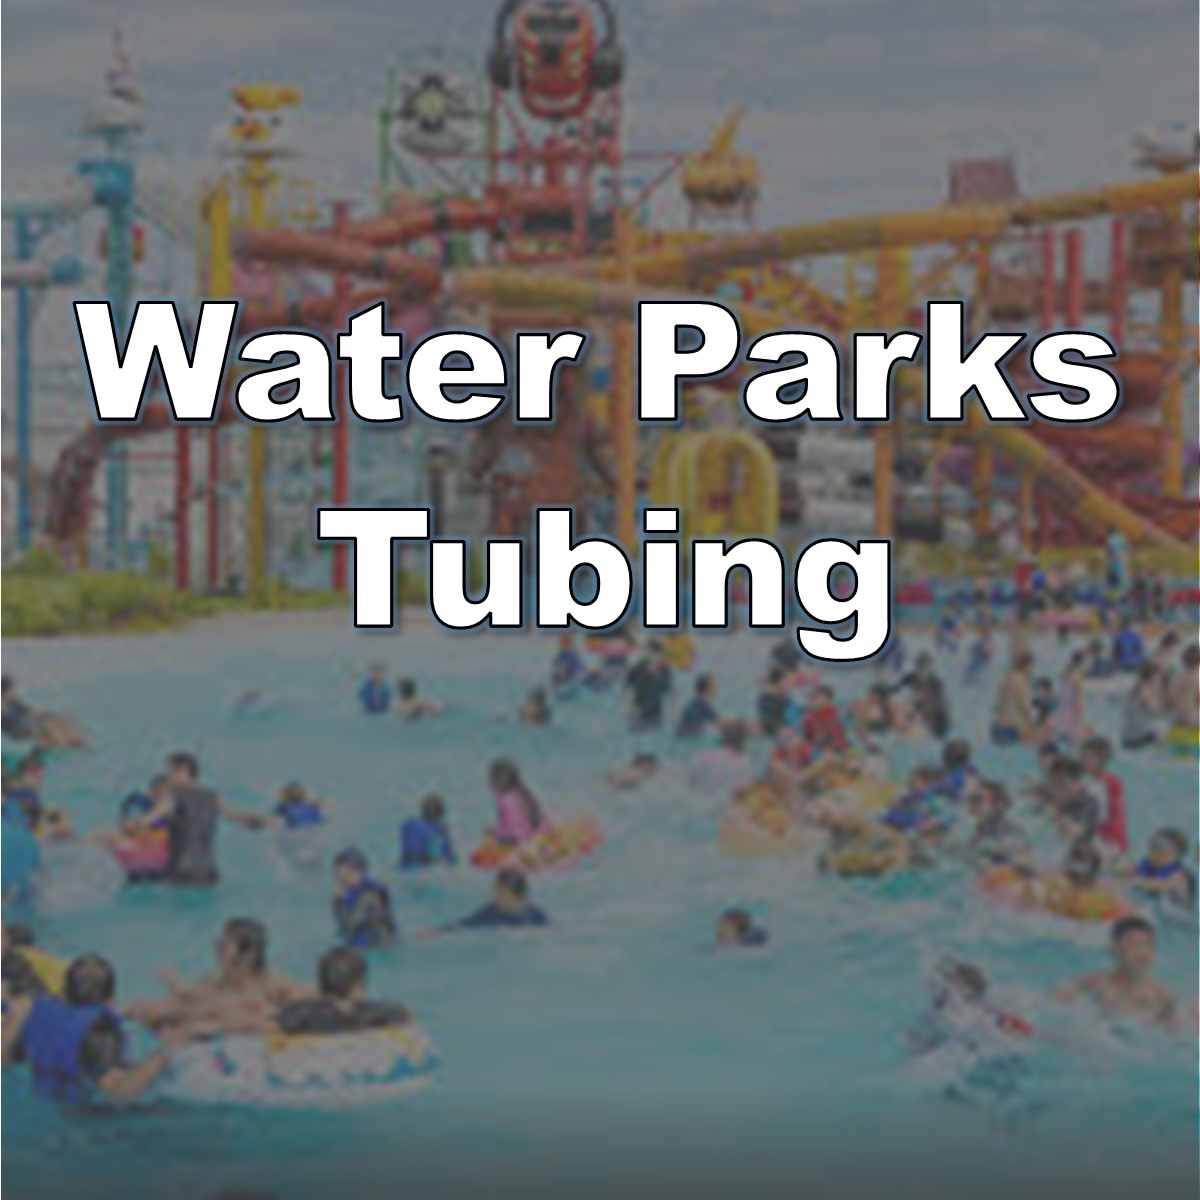 water parks tubing button